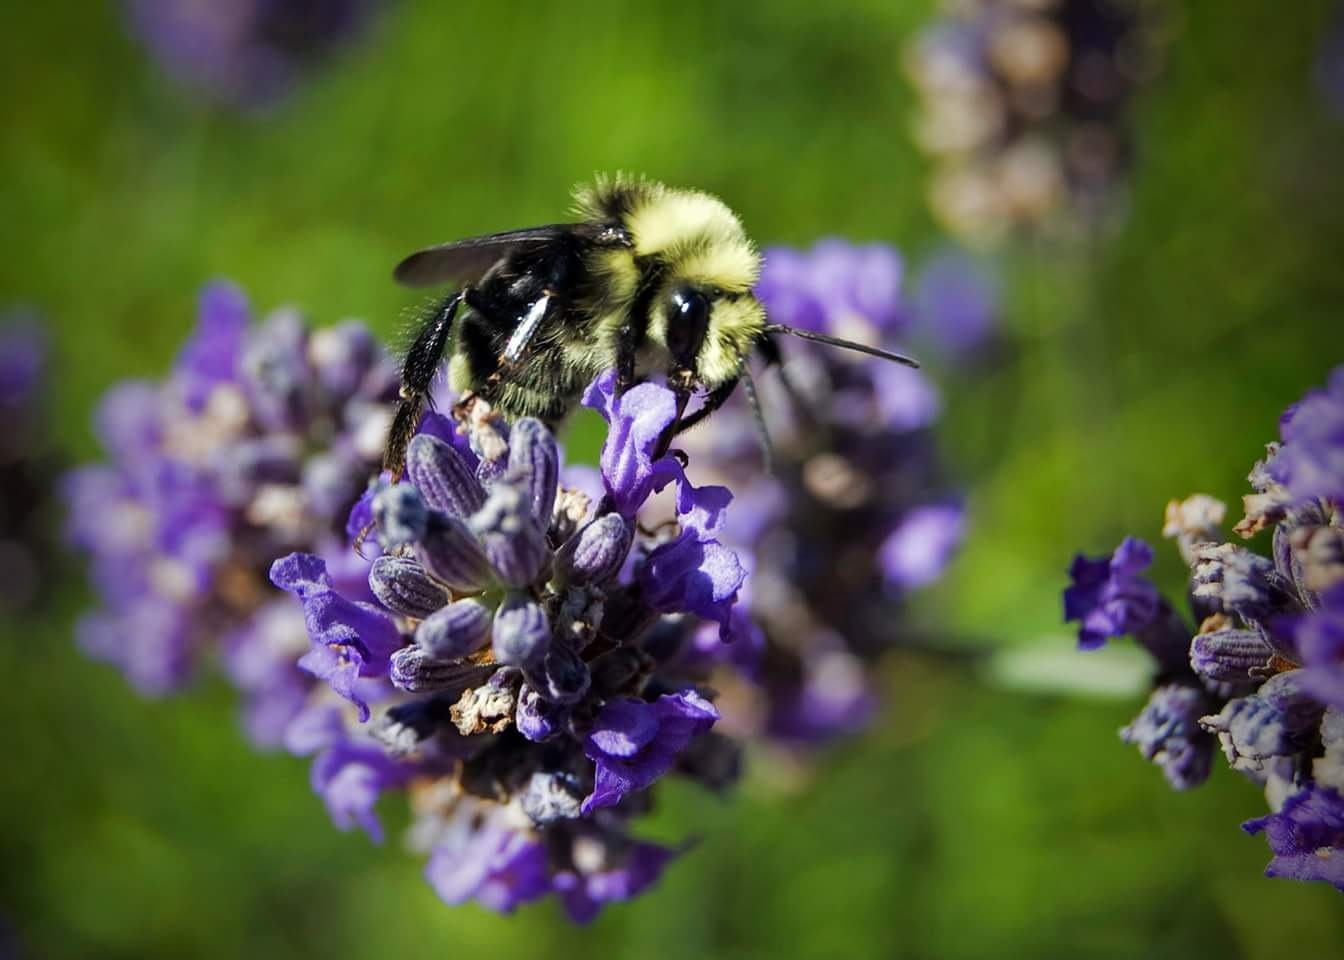 Bee in Lavendar, 2010 by Colleen Ronkar